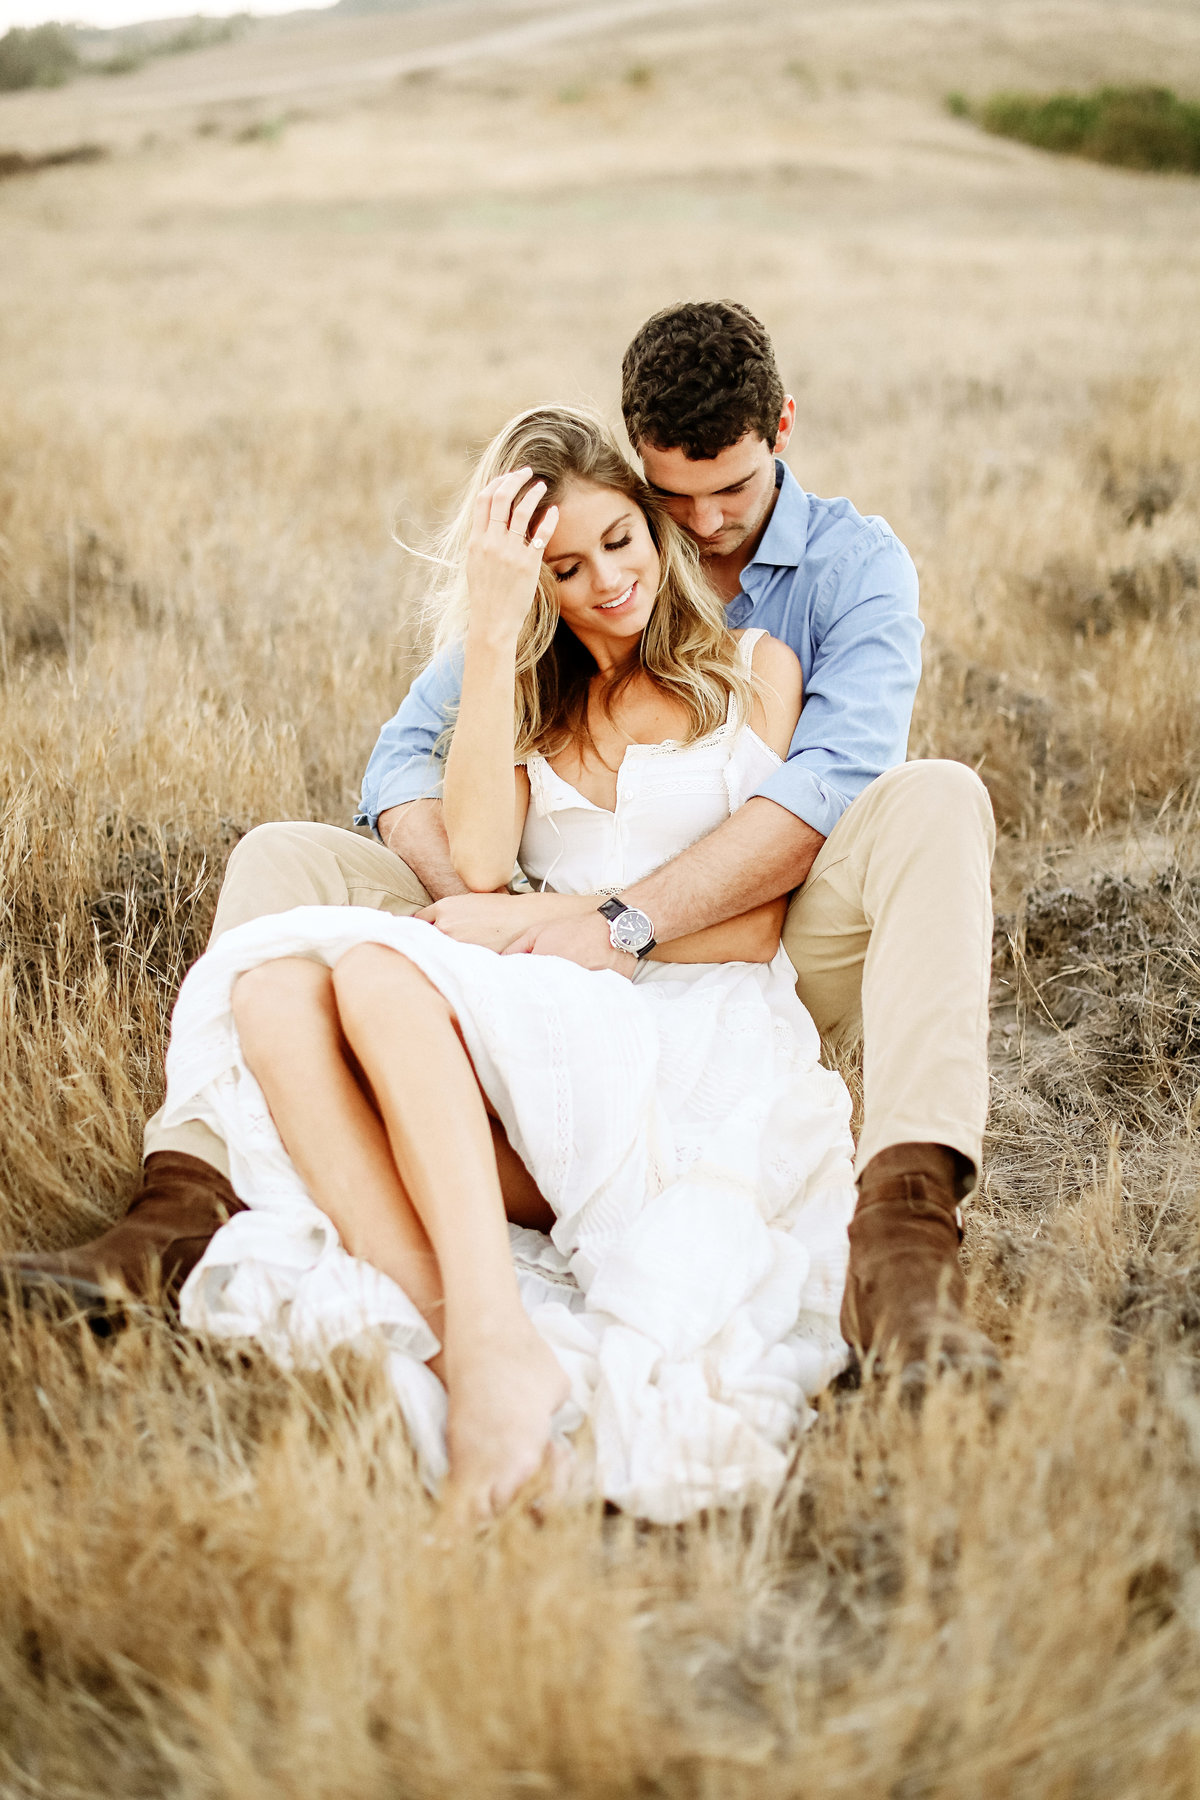 Rustic_Engagement_Session_031